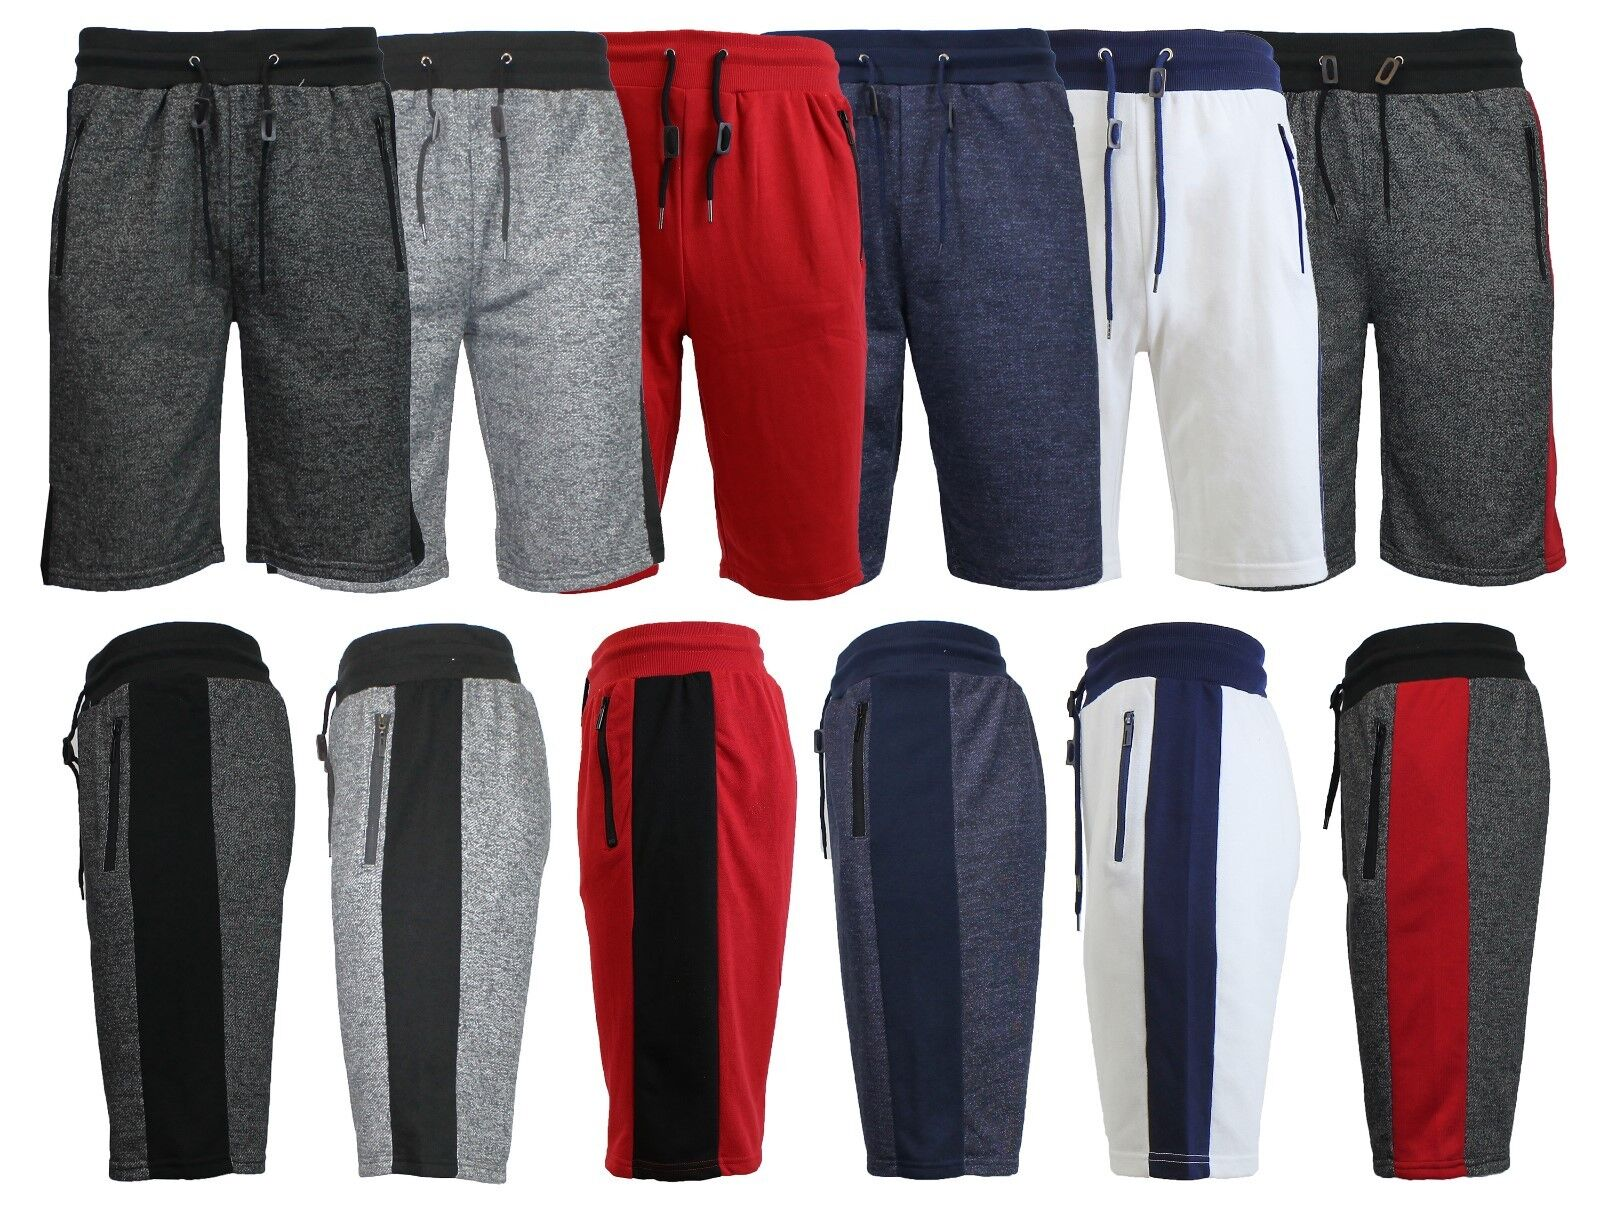 Men's French Terry Shorts – Lounge & Sleep- Soft & Breathable NWT- Free Shipping Clothing, Shoes & Accessories